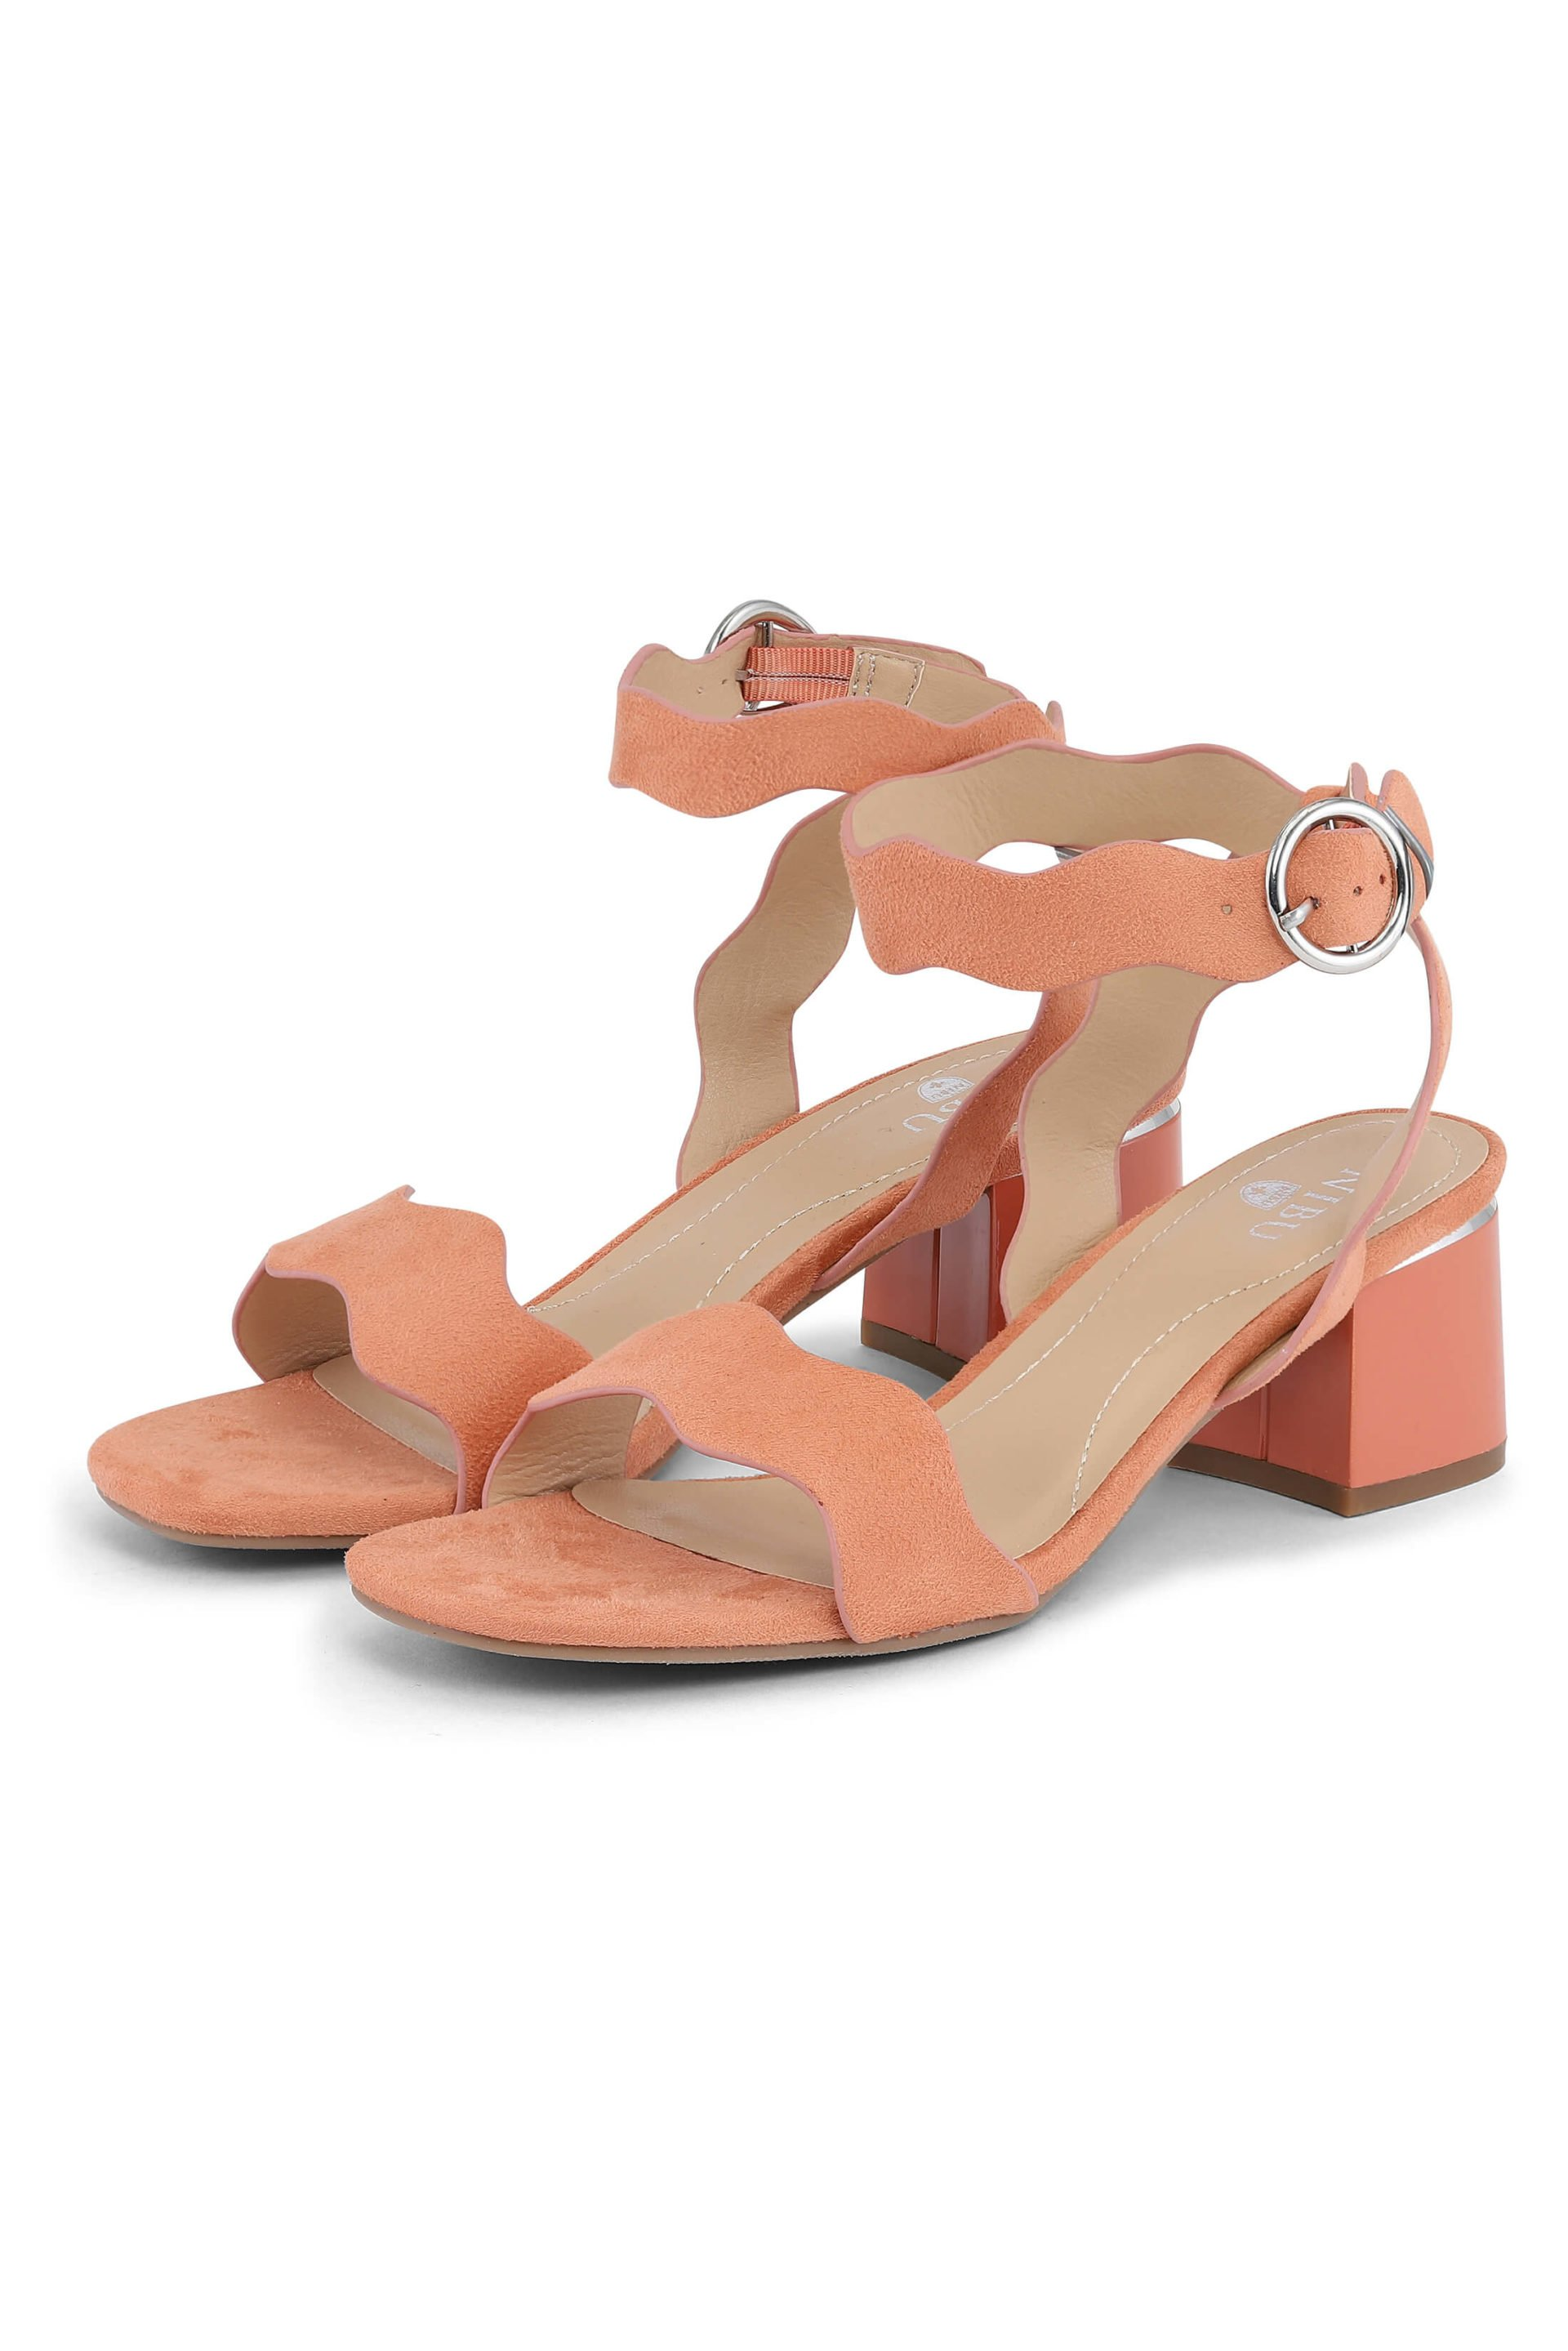 Gold-earth color sandals